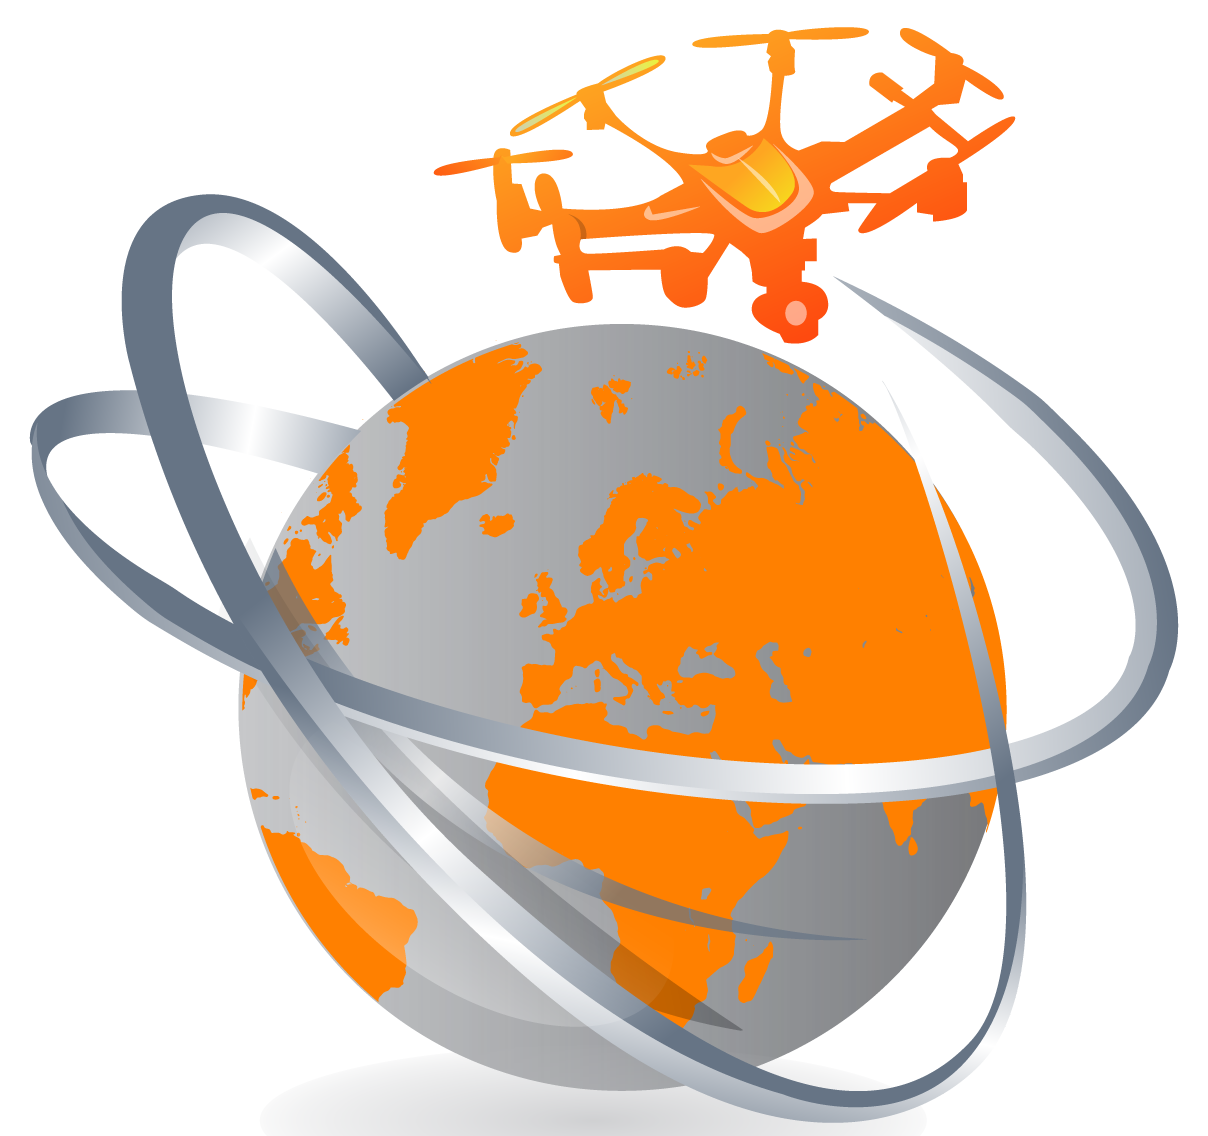 Drone Services Dorset | Dorset Drone Specialists | Aerial Photography Services | Stratospheric Filming